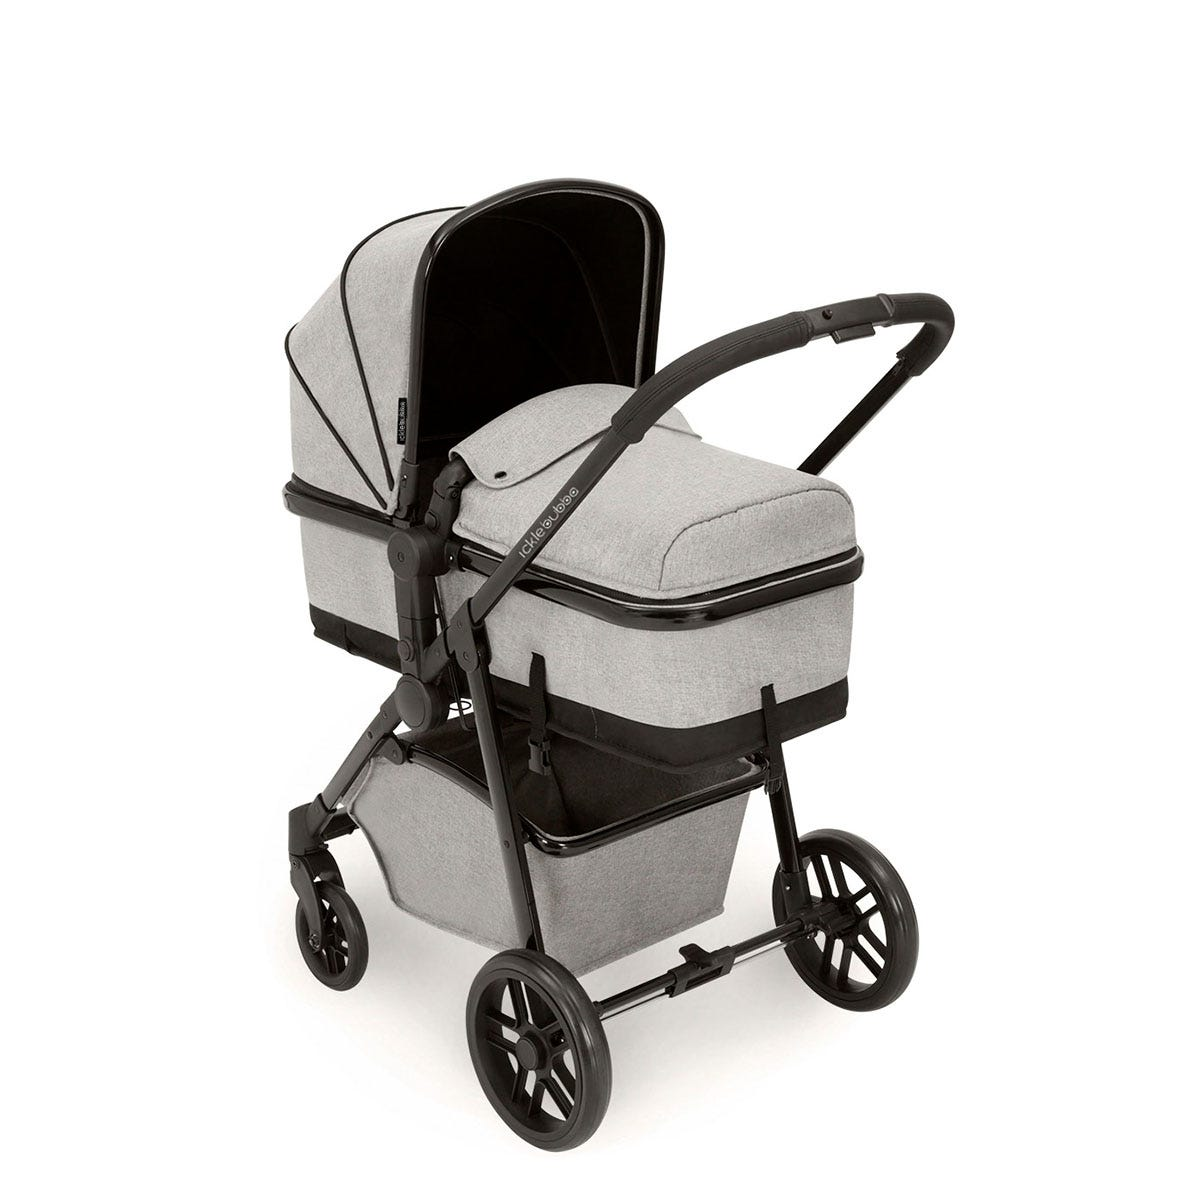 Ickle Bubba Moon i-Size 3 in 1 Travel System - Silver Grey on Black with Black Handles